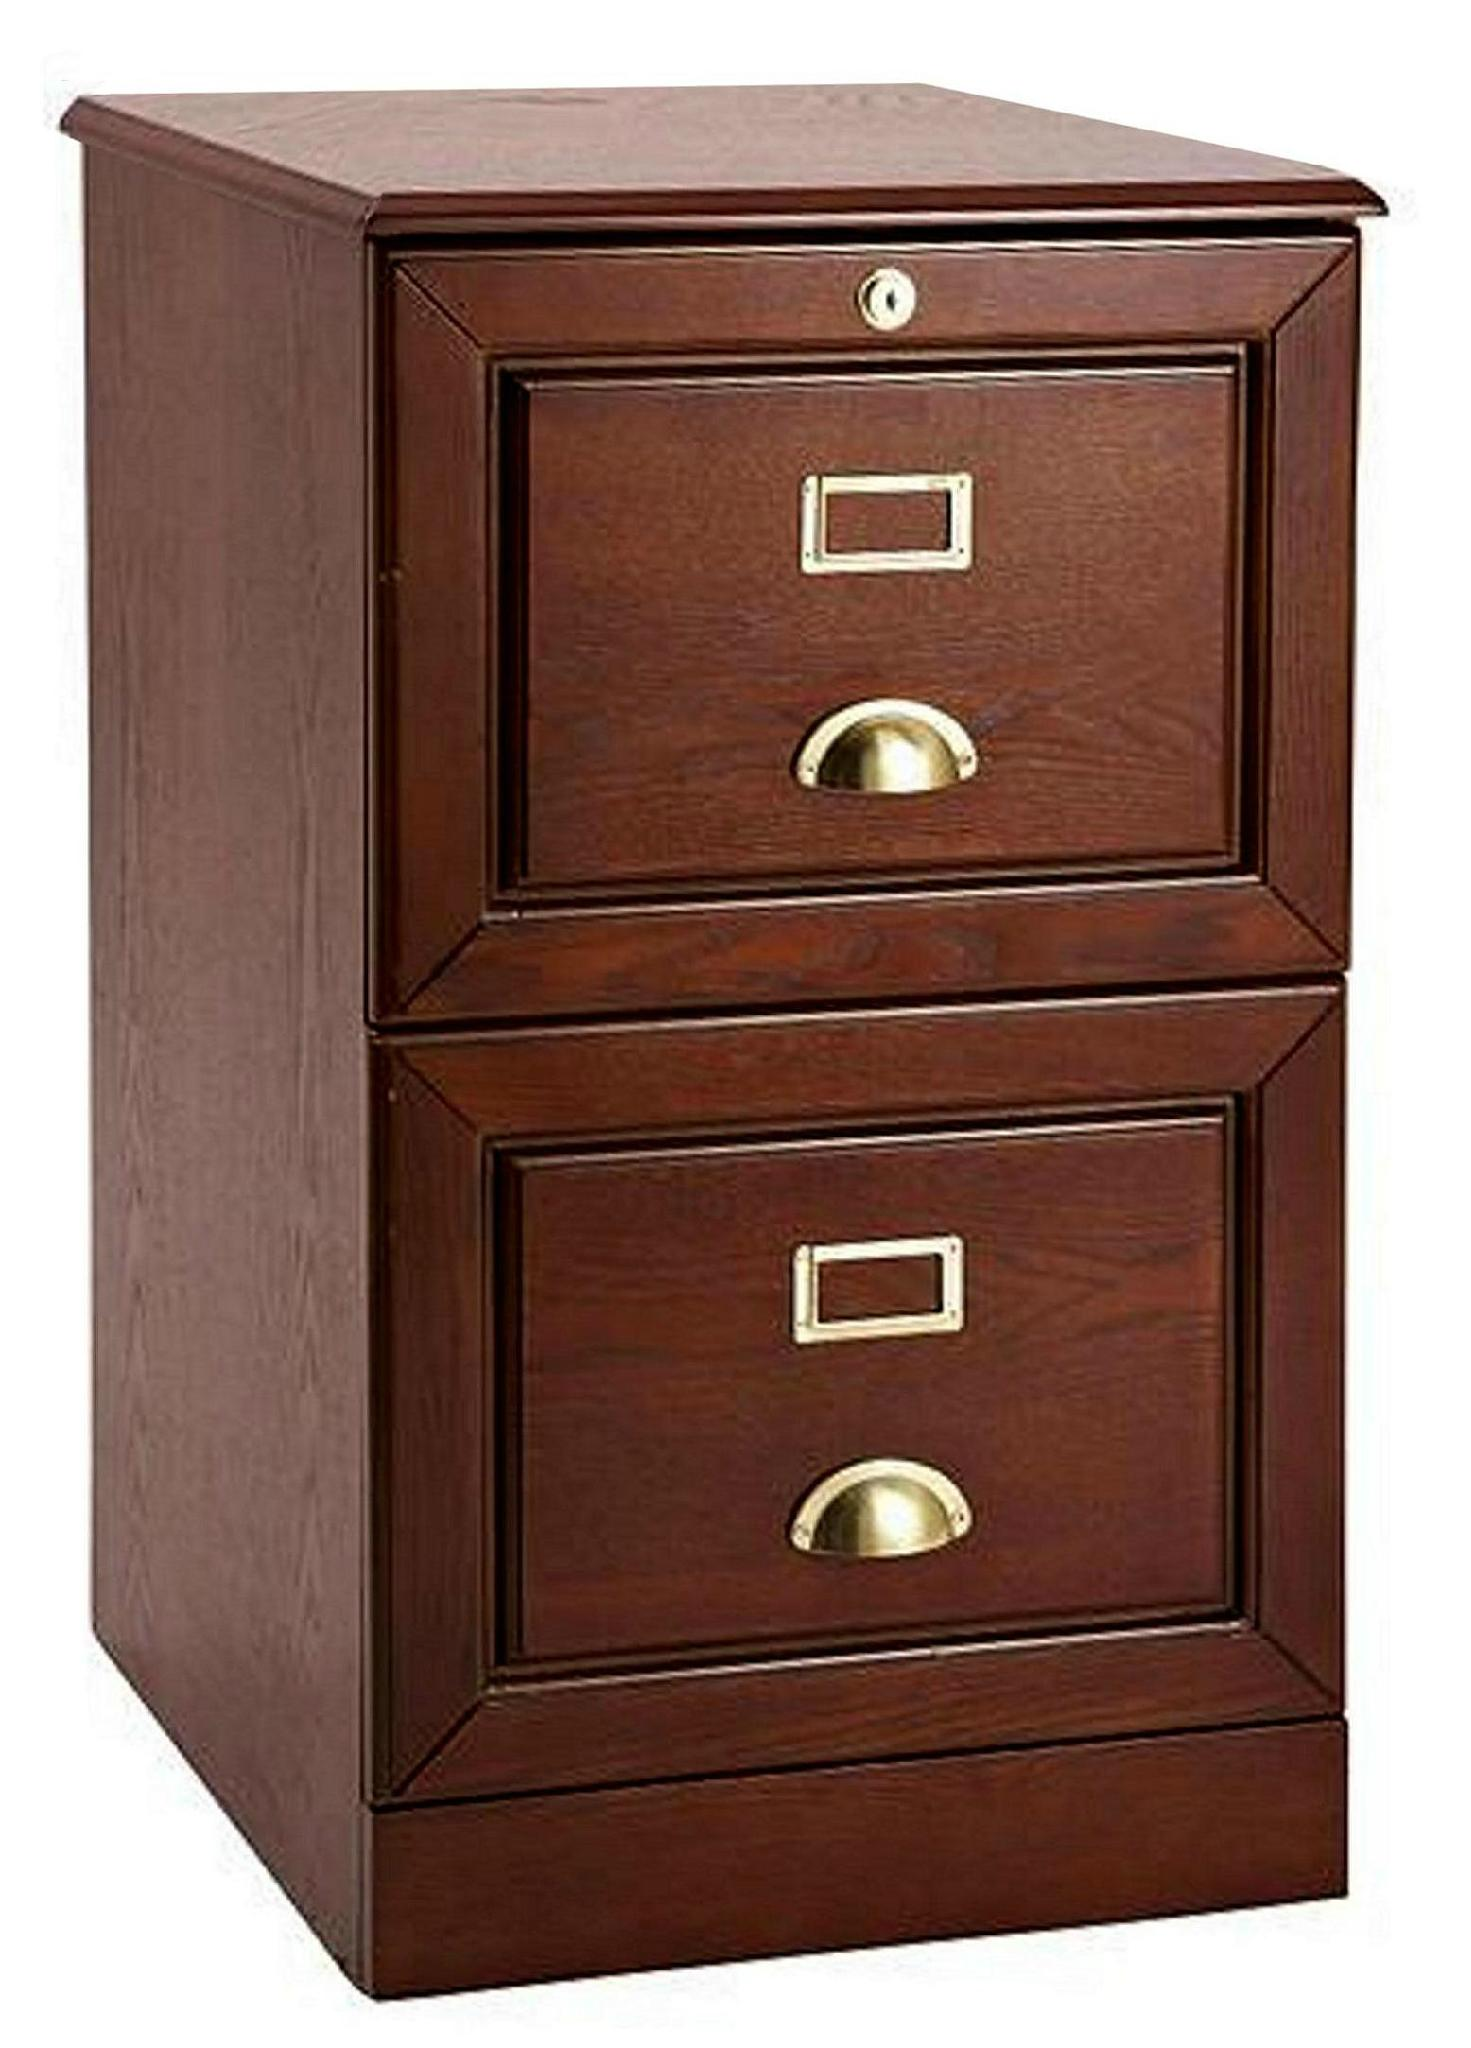 Wooden Oak Locking 2 Drawer File Cabinet Wd 3723